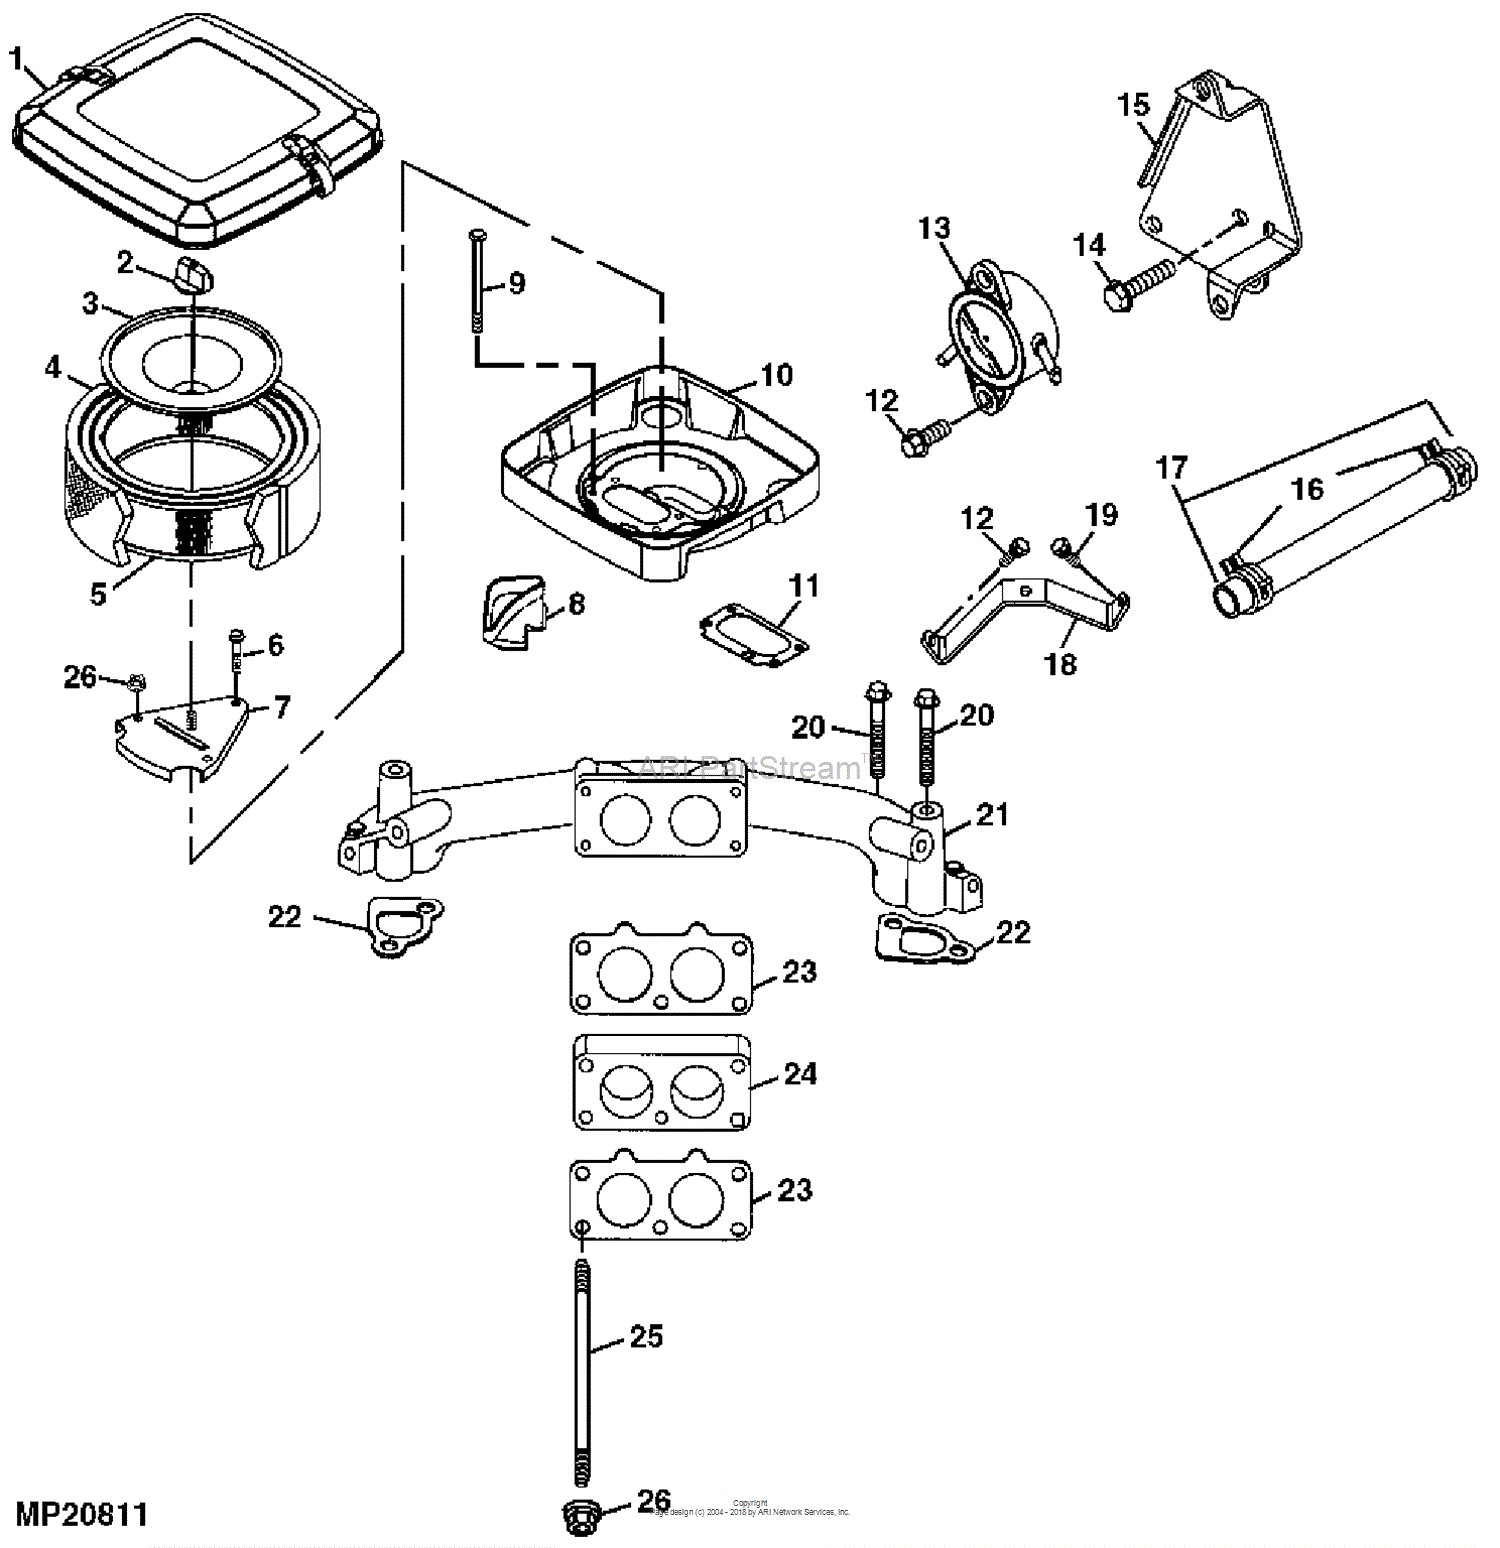 Tractor Engine Parts Diagram John Deere Parts Diagrams John Deere Sabre Garden Tractor Pc2698 Of Tractor Engine Parts Diagram